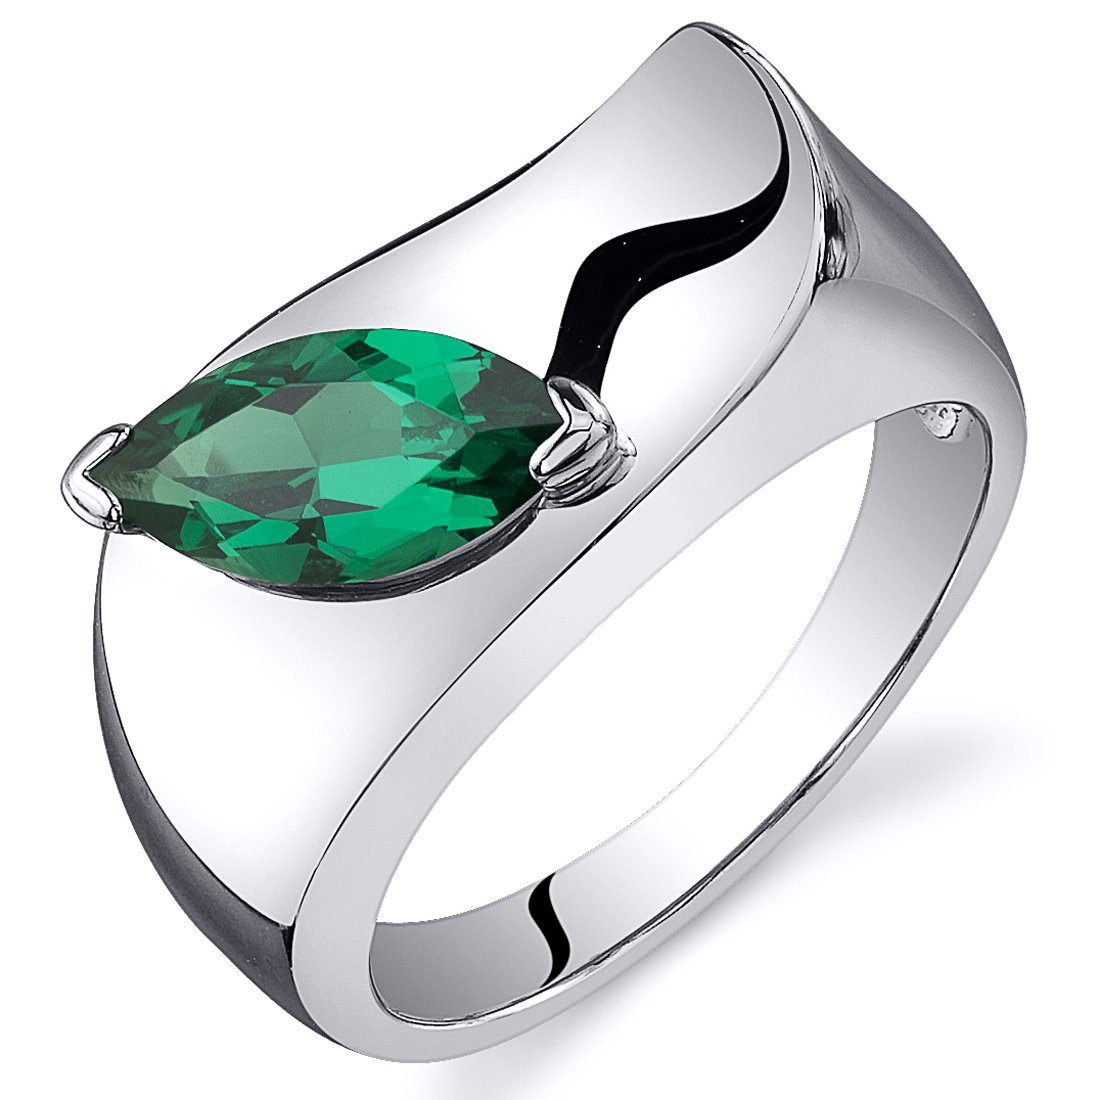 Simulated Emerald Ring Sterling Silver Rhodium Nickel Finish Marquise Shape Museum Style Size 9